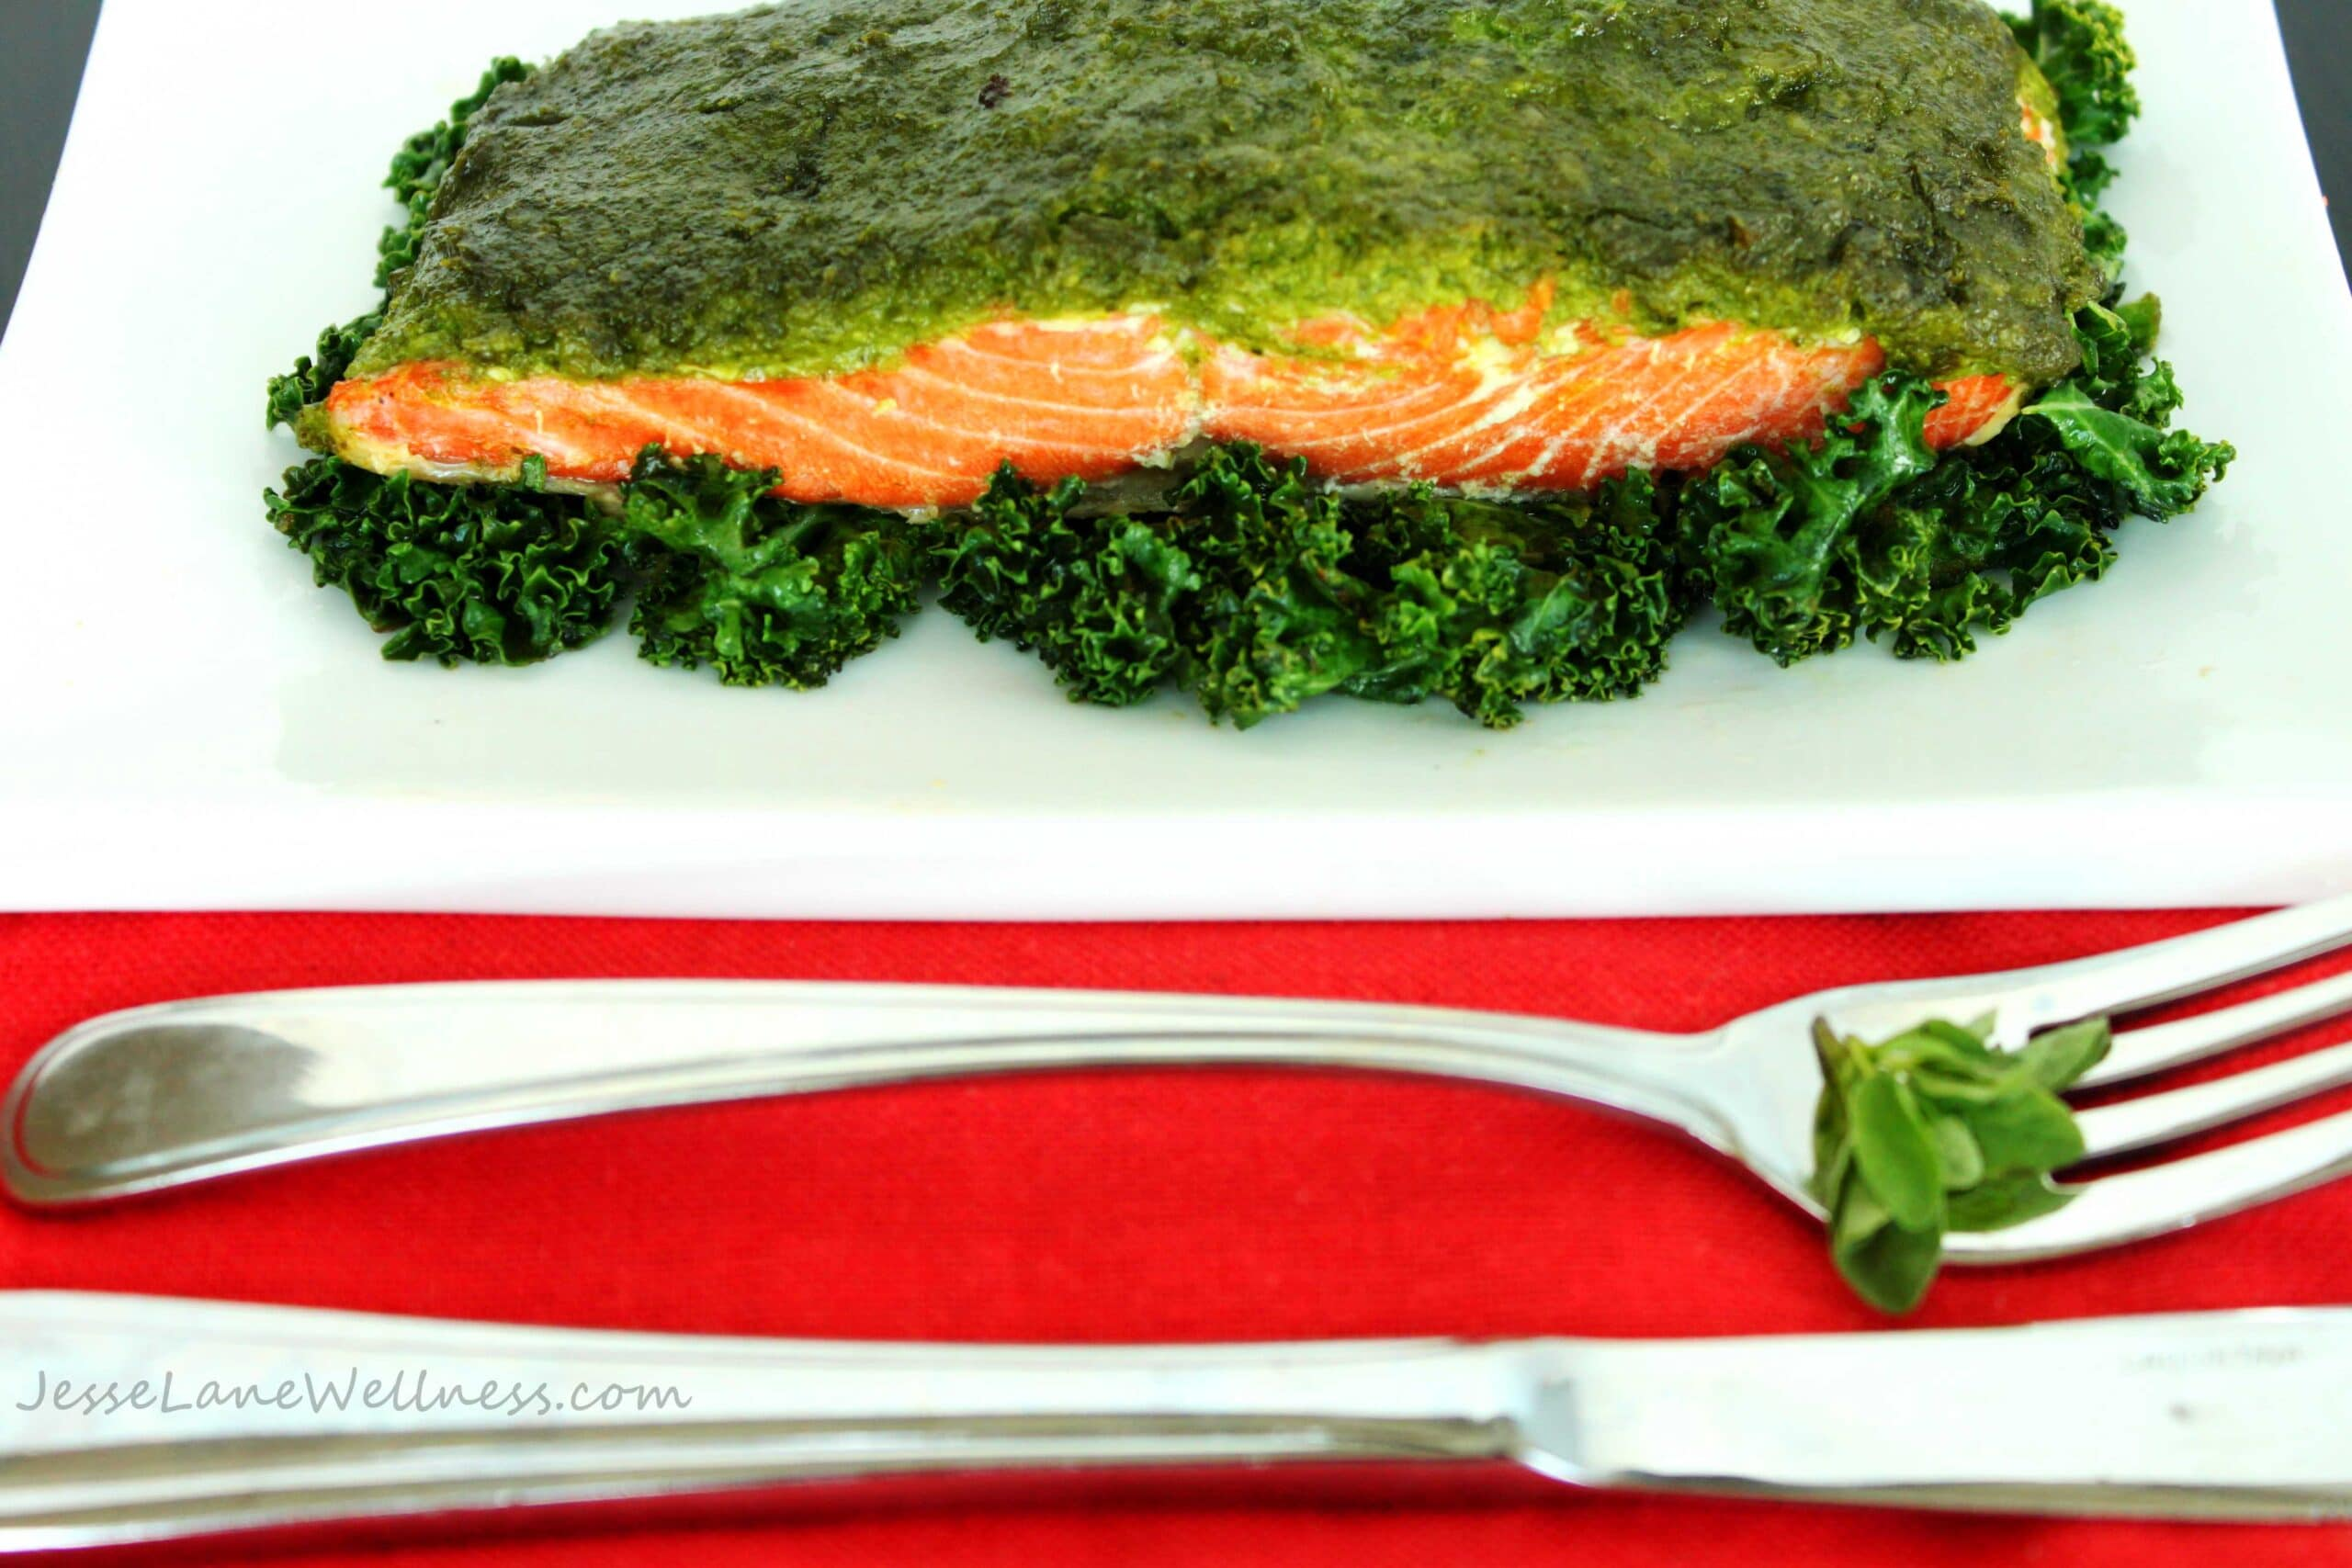 Kale Oregano Pesto Salmon by @JesseLWellness #glutenfree